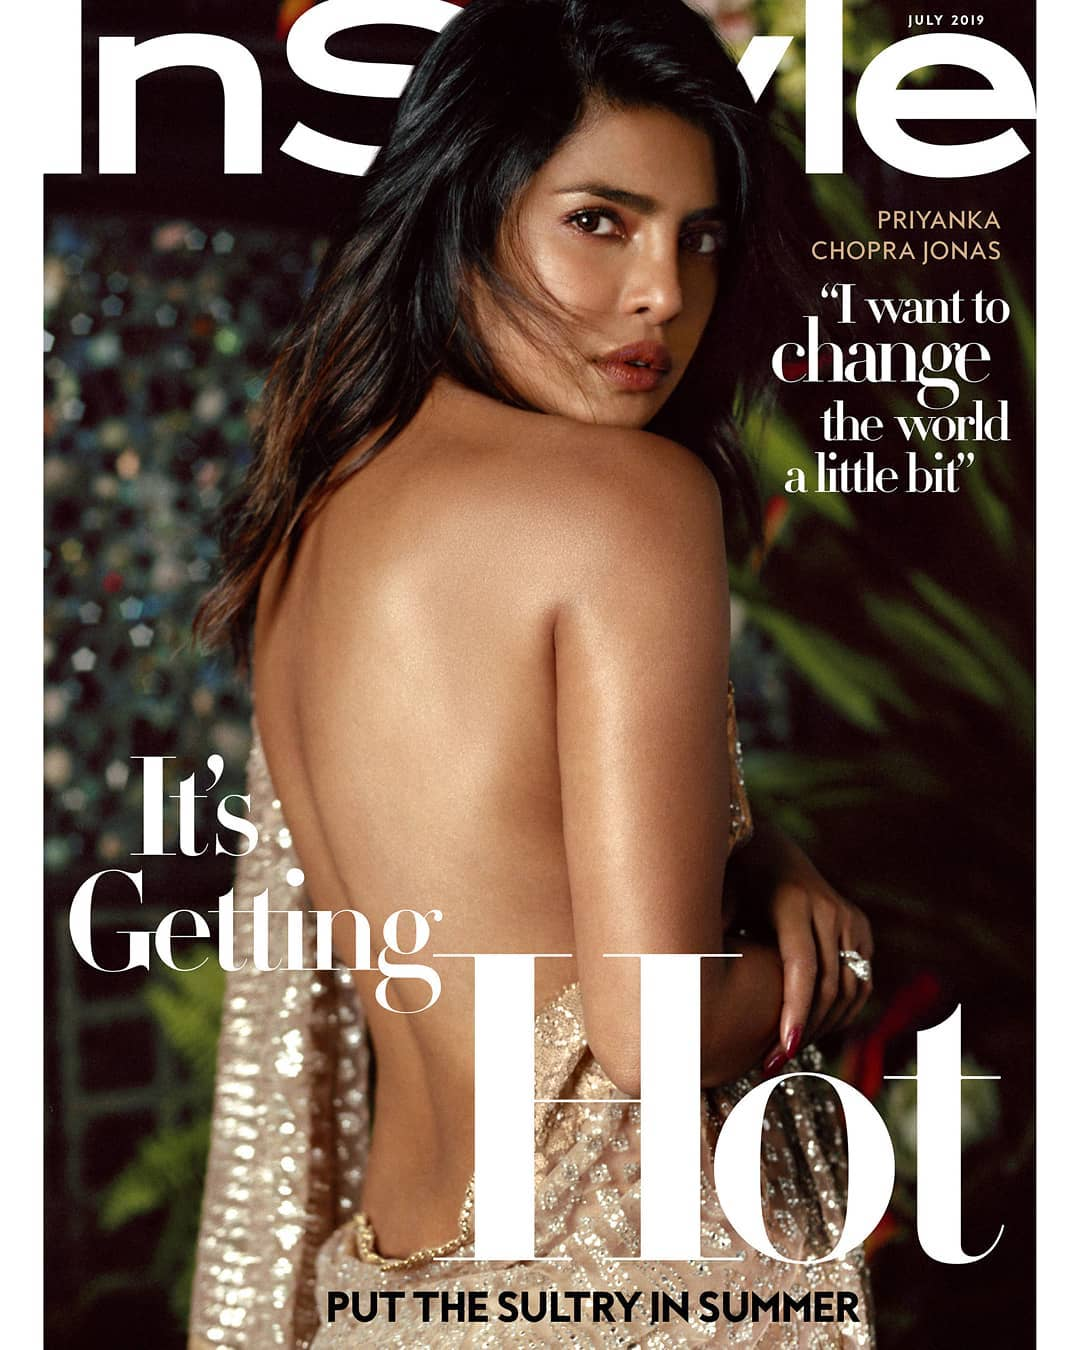 Priyanka Chopra Sizzles In Backless Saree In The New Magazine Cover Shoot